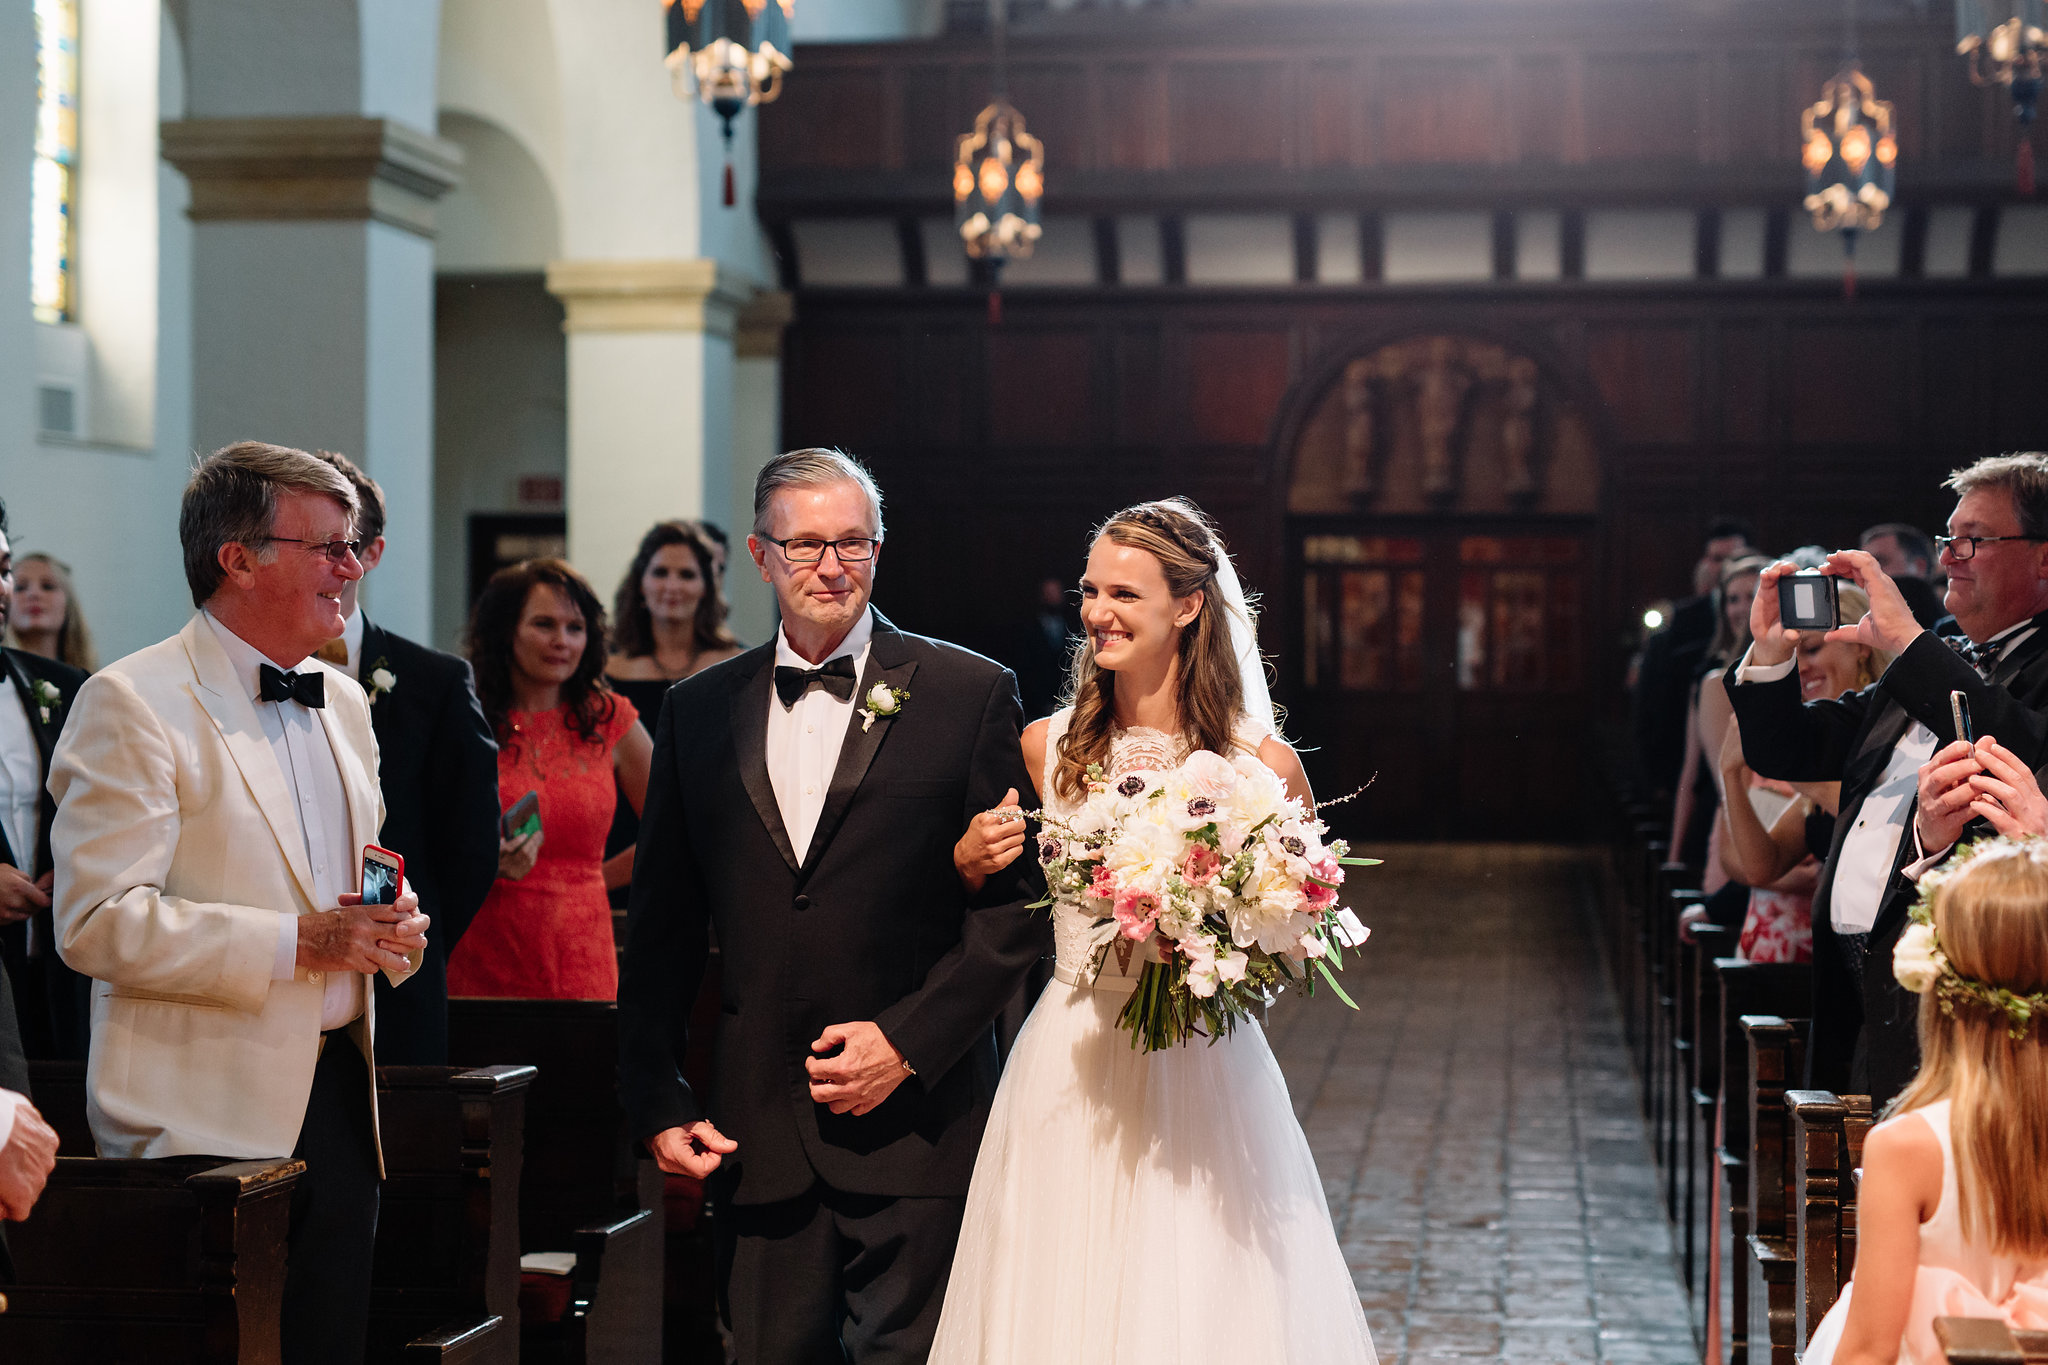 Carson and her father escorting her down the aisle, Knowles Memorial Chapel Wedding Ceremony